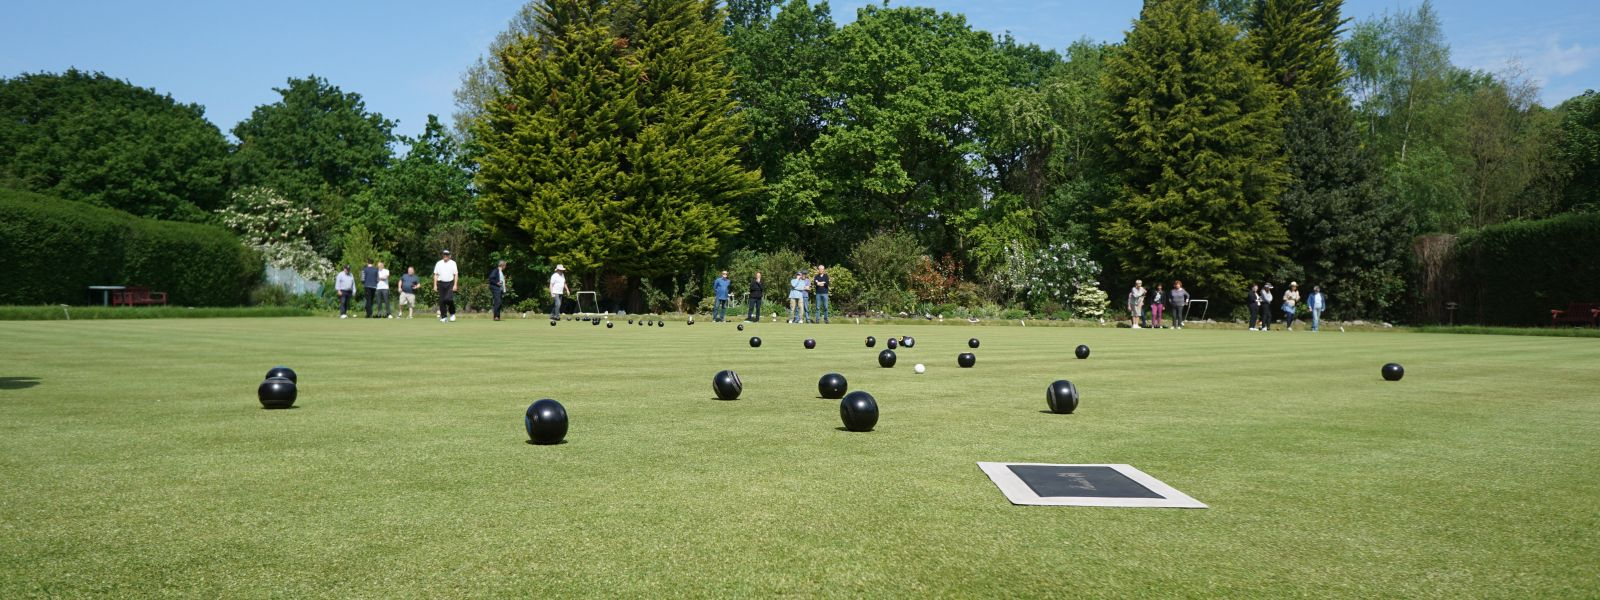 Welcome to the Cotswold Bowls Centre